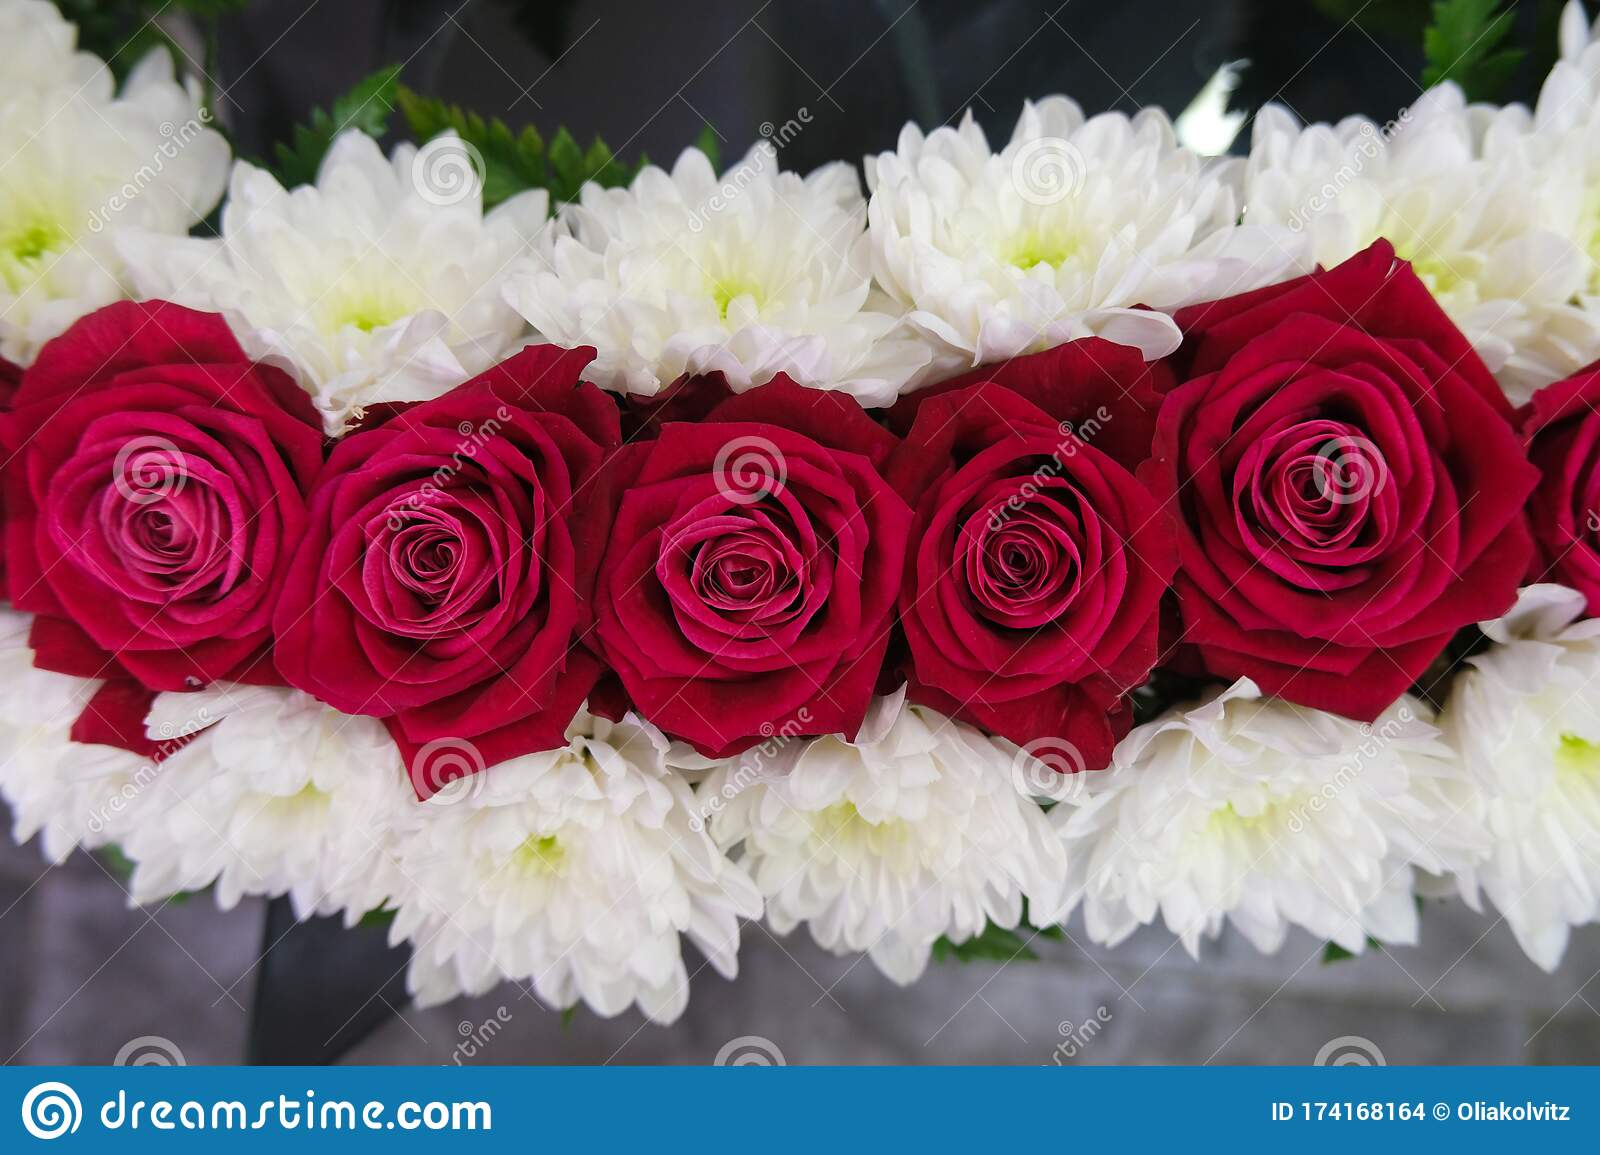 Roses And Chrysanthemum Flowers Arrangement White And Red Roses Small Cute Flowers Stock Photo Image Of Florist Decorative 174168164